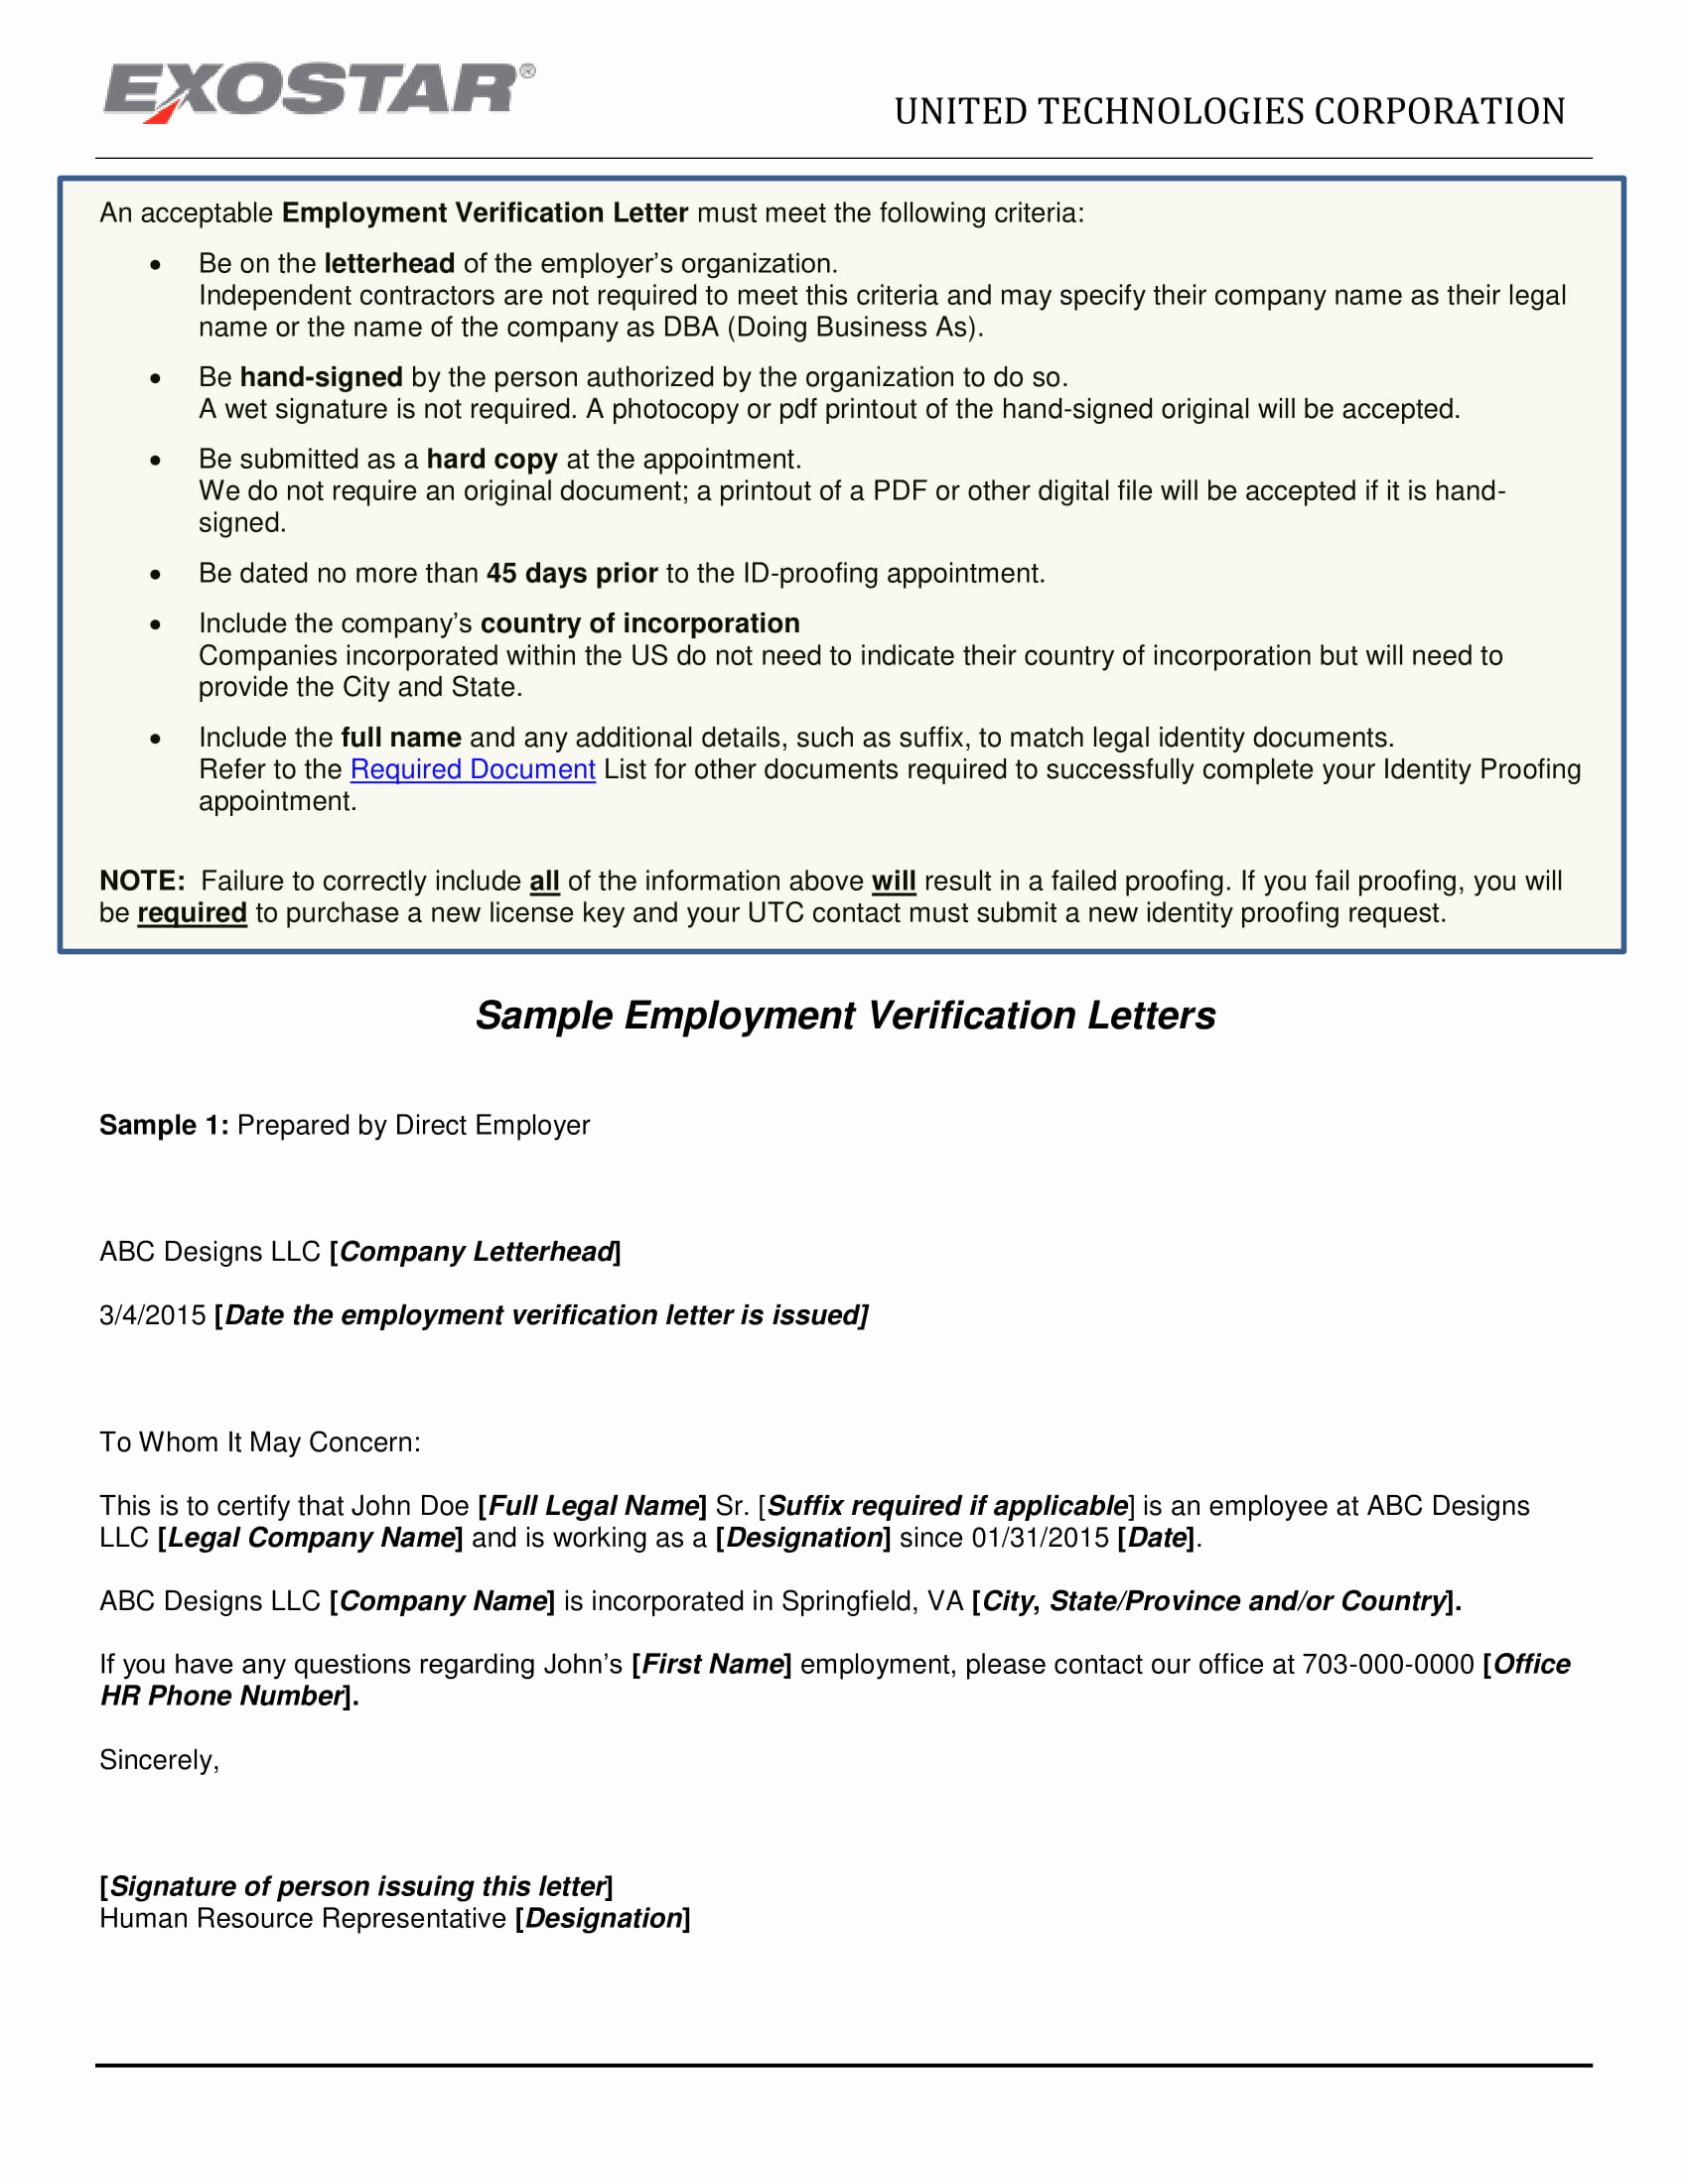 Employment Verification Letter Pdf Lovely 14 Employment Verification Letter Examples Pdf Doc